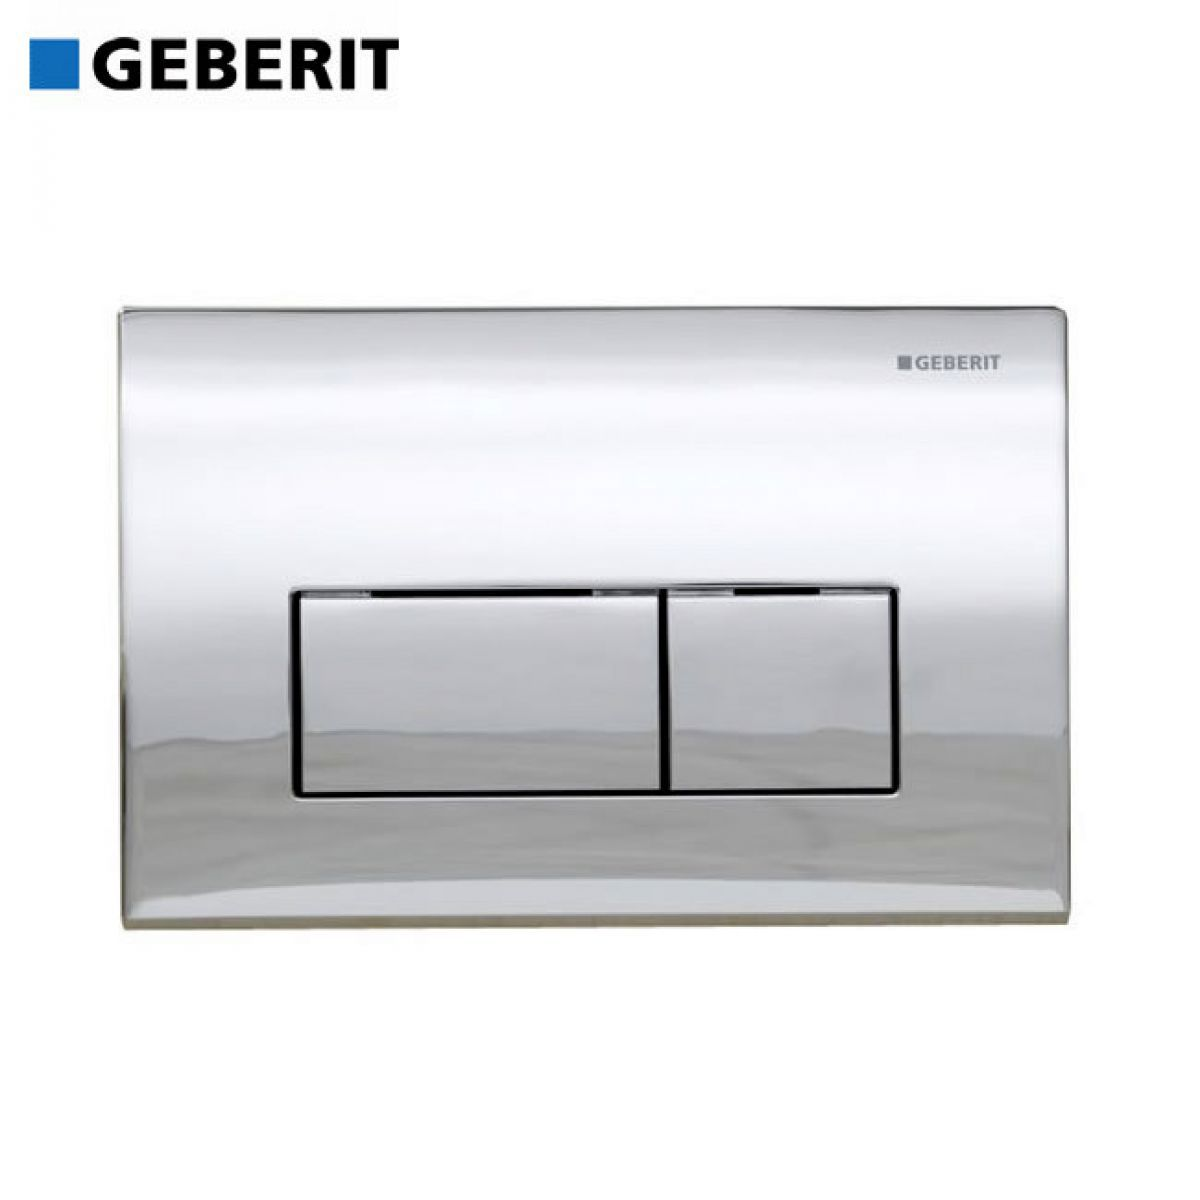 geberit kappa50 dual flush plate uk bathrooms. Black Bedroom Furniture Sets. Home Design Ideas